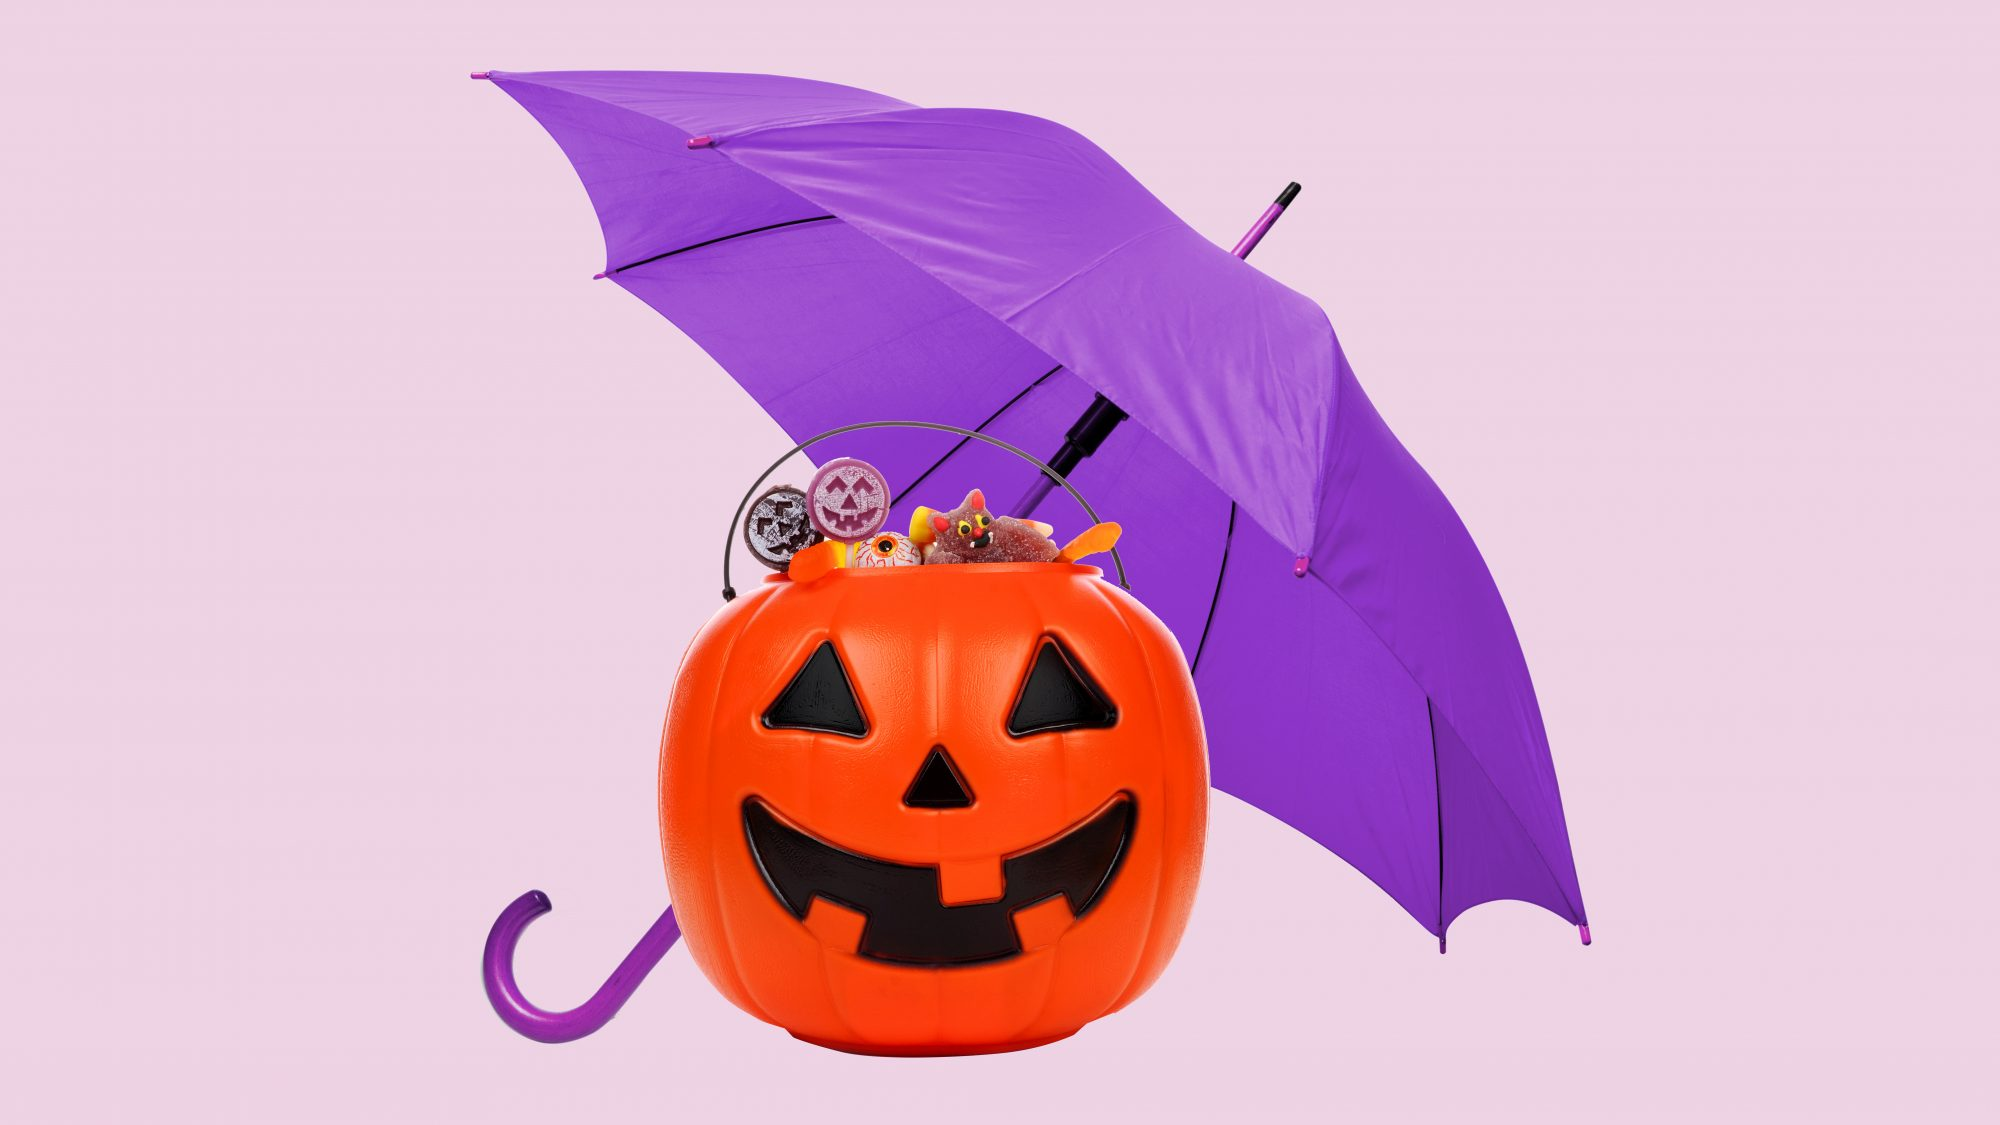 Best Halloween Costumes for the Rain and Snow